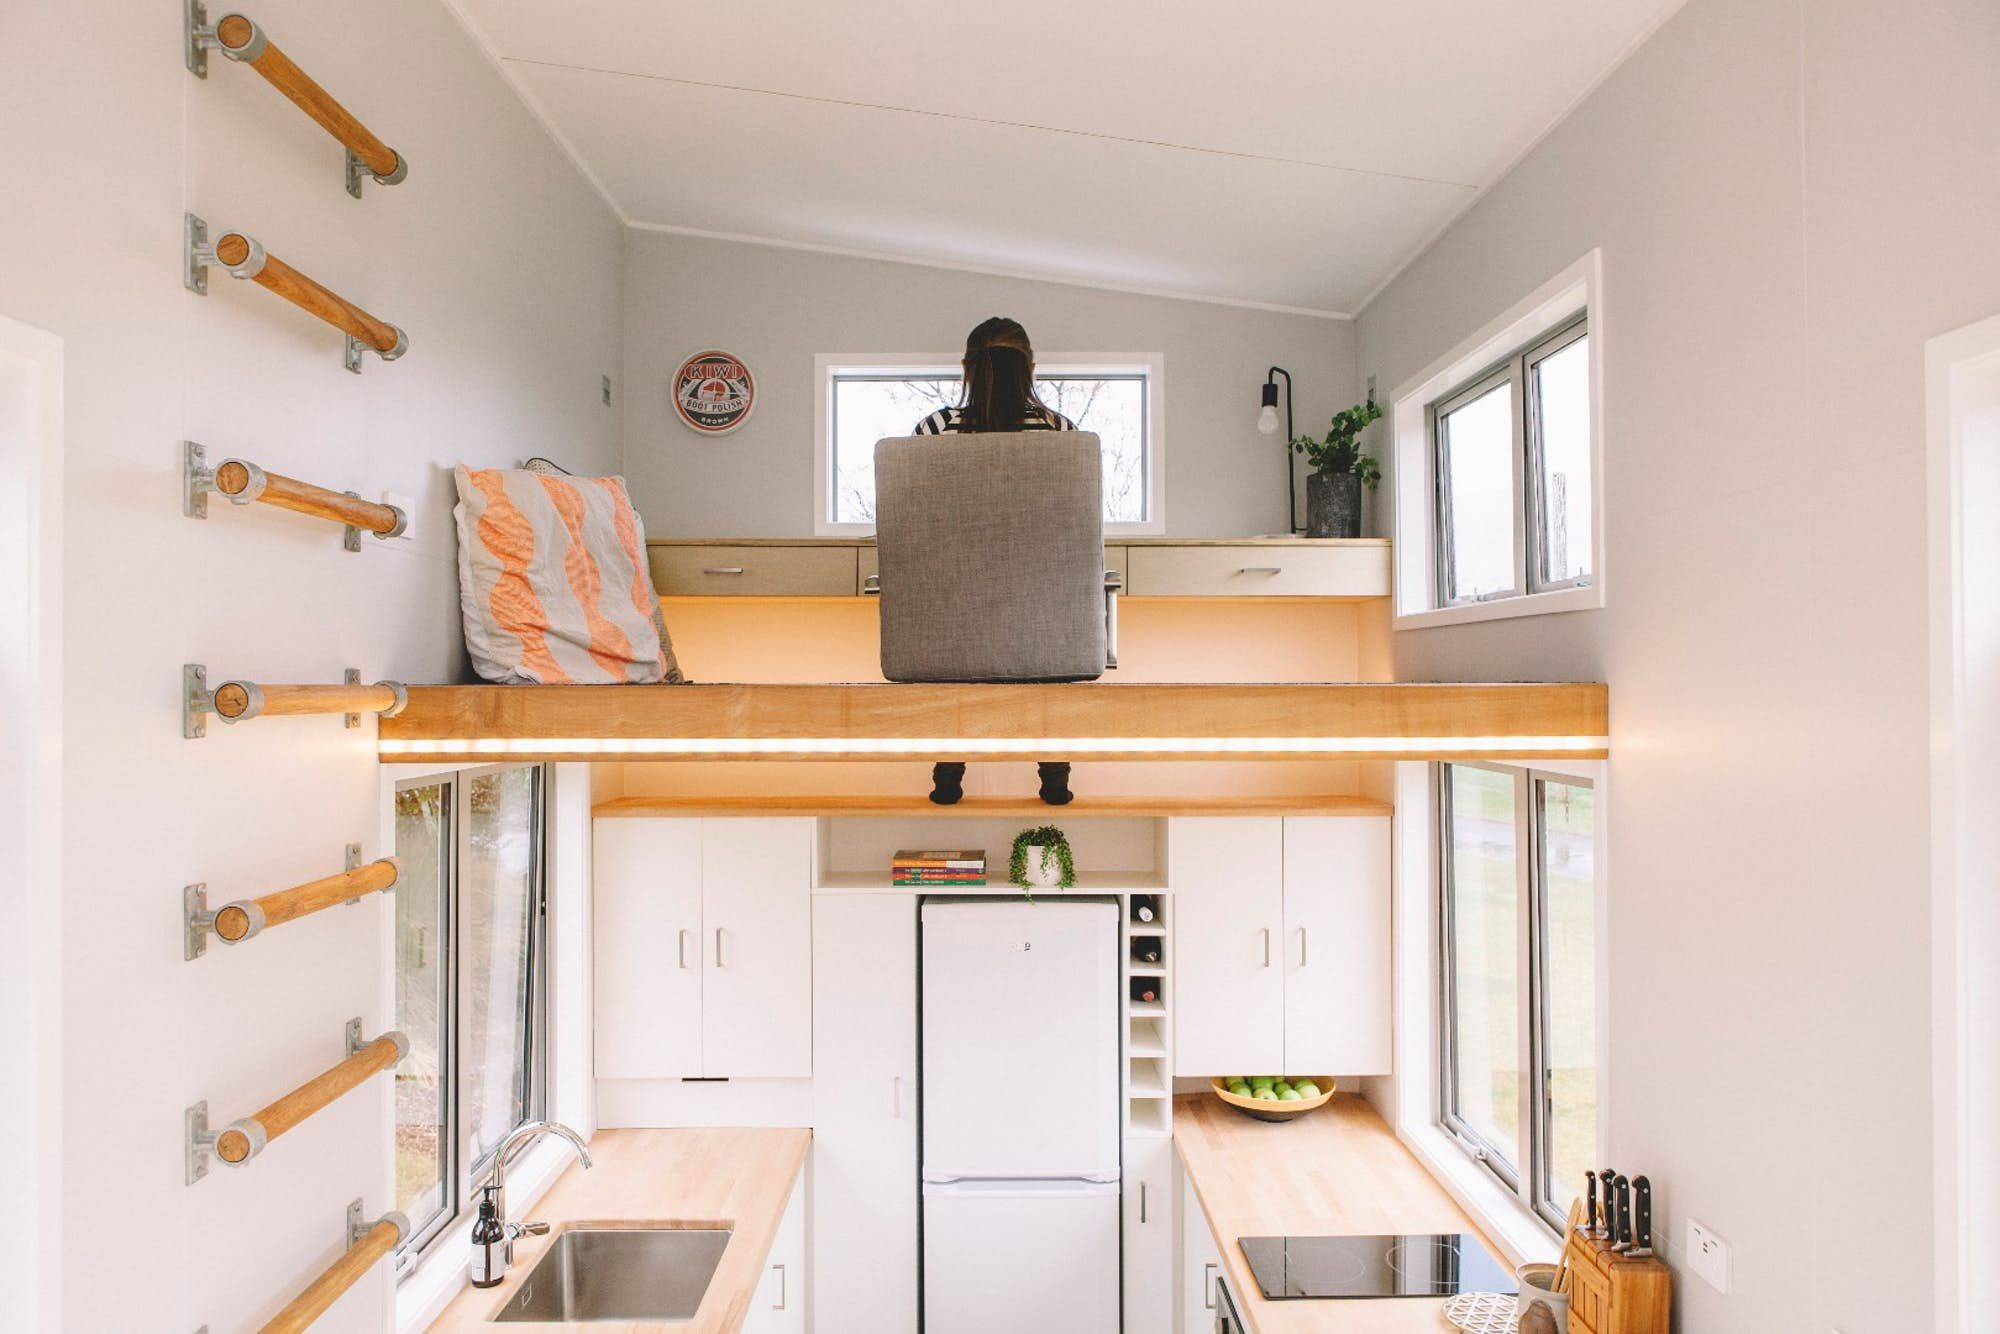 Access To The Millennial Tiny Houseu0027s Loft Office Is Gained By Ladder  Integrated Into The Wall